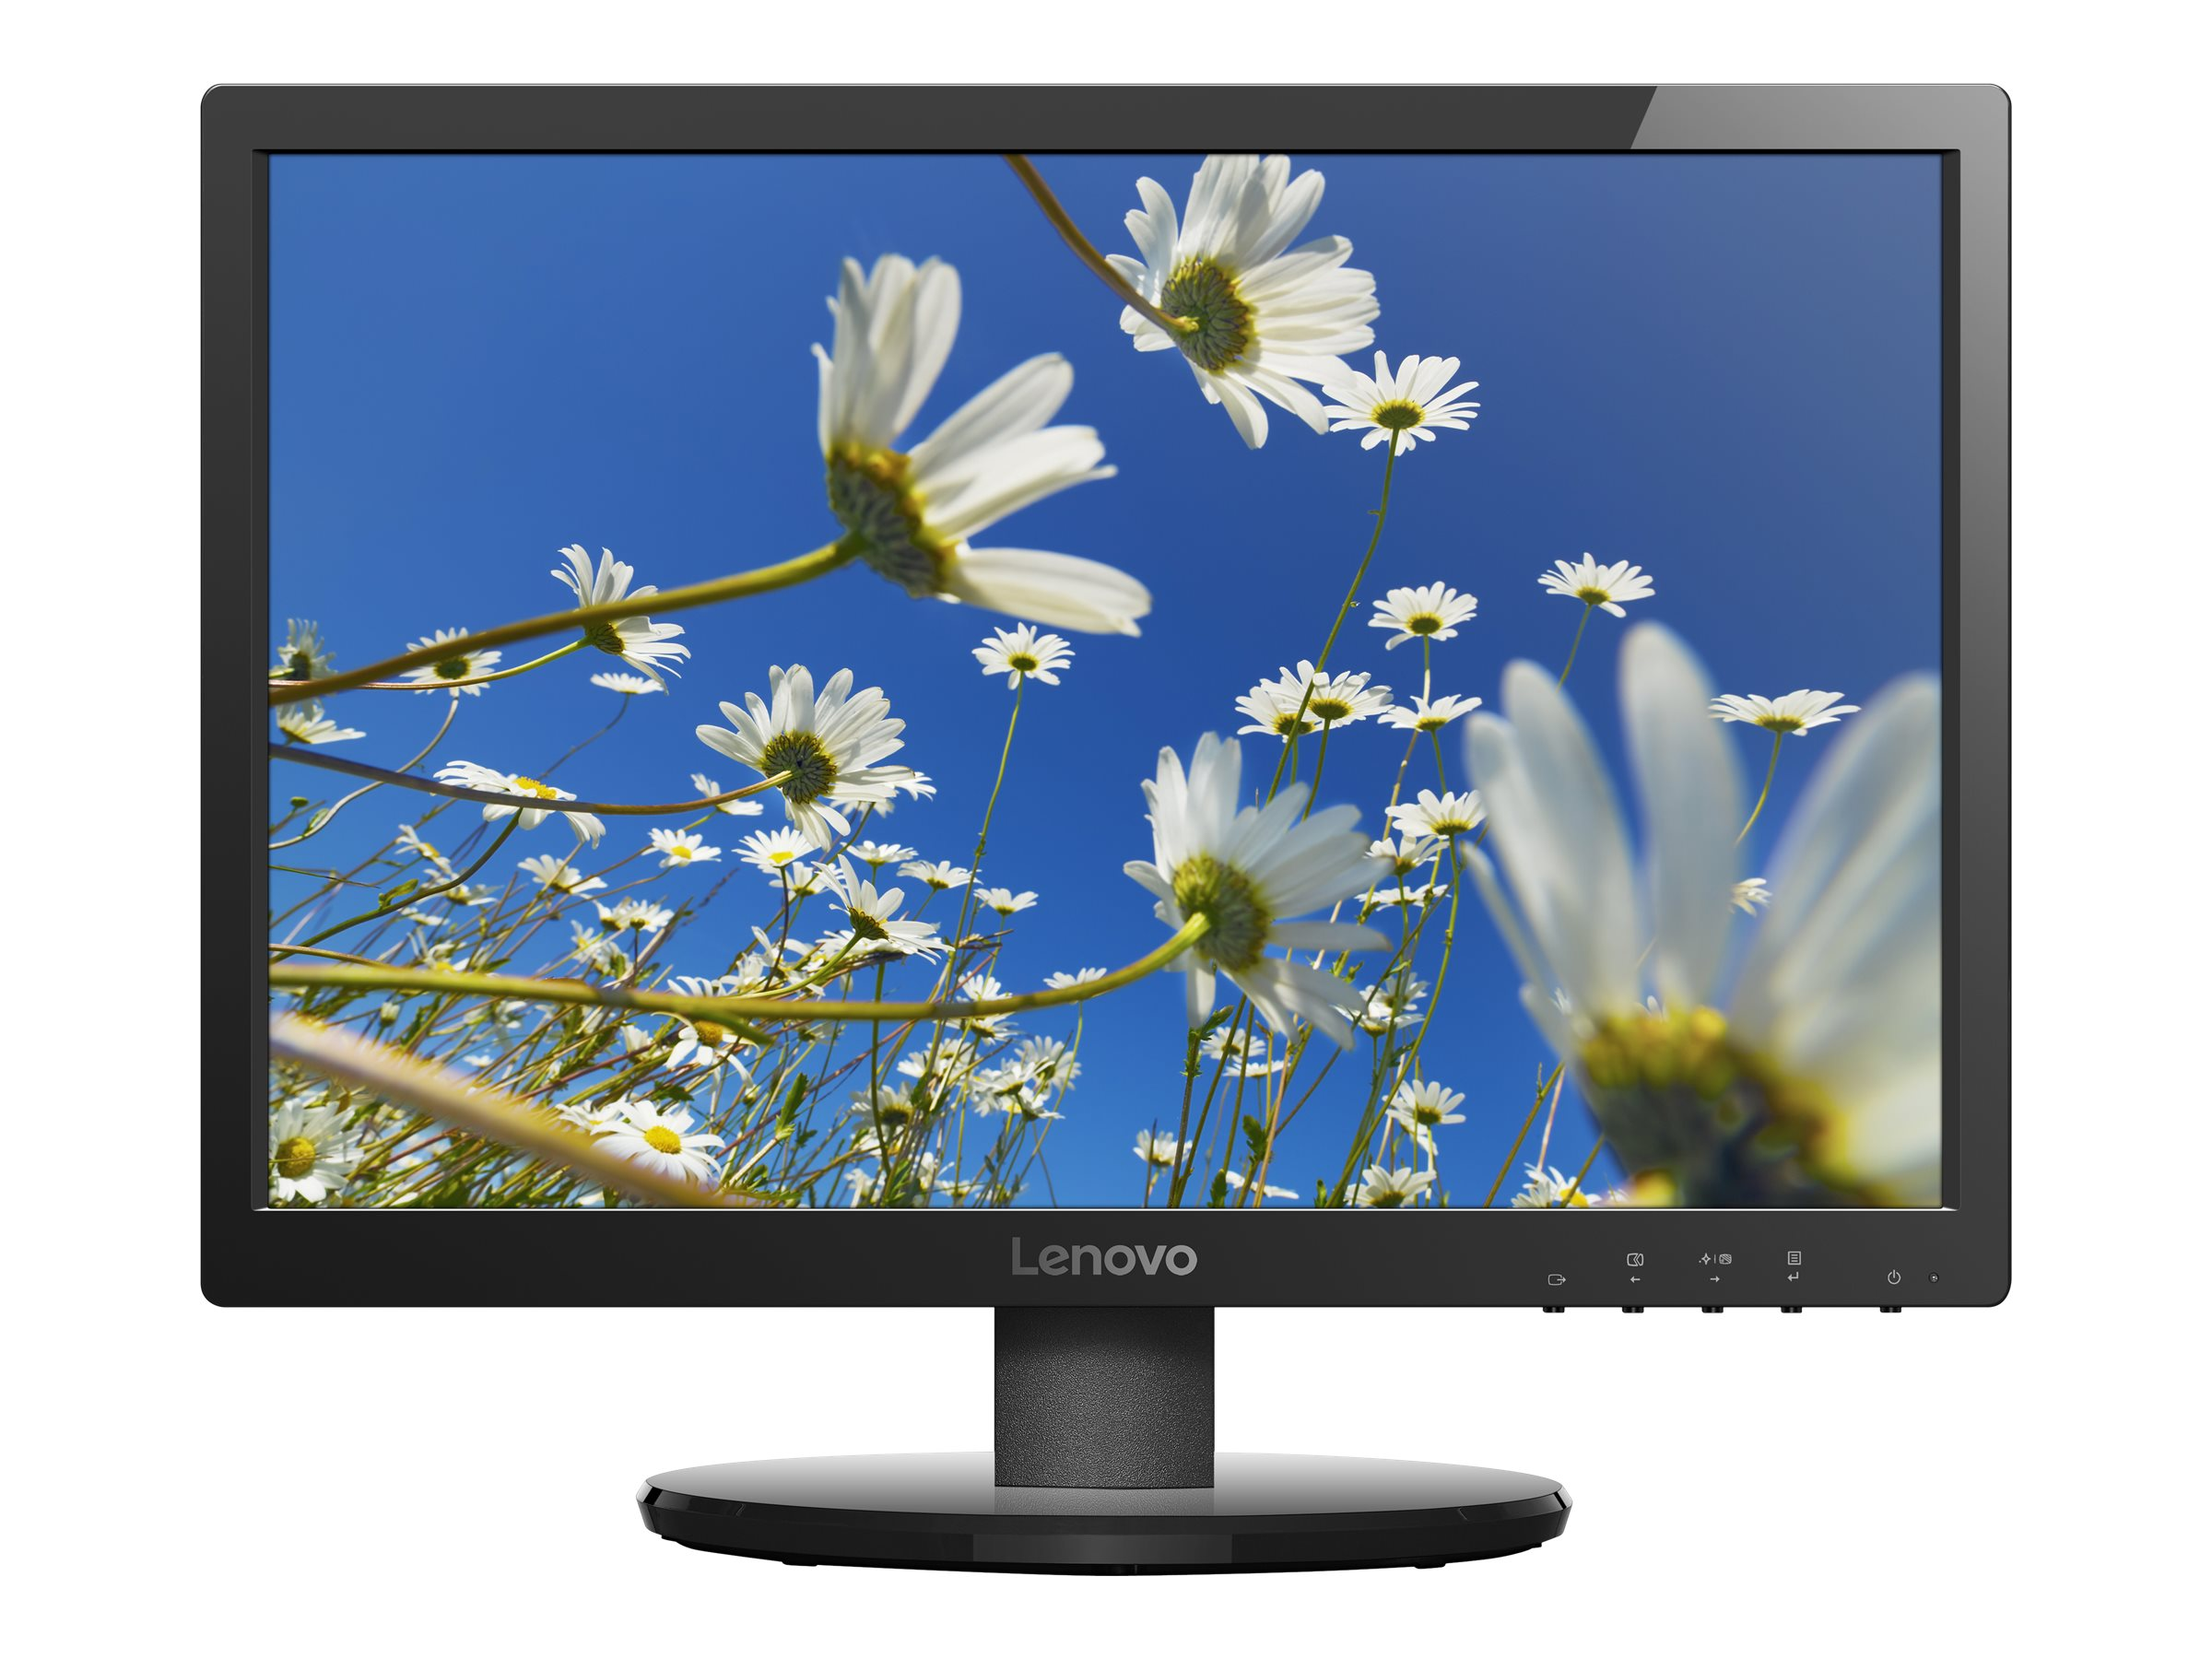 Lenovo 19.5 LI2054 LED-LCD Monitor, Black